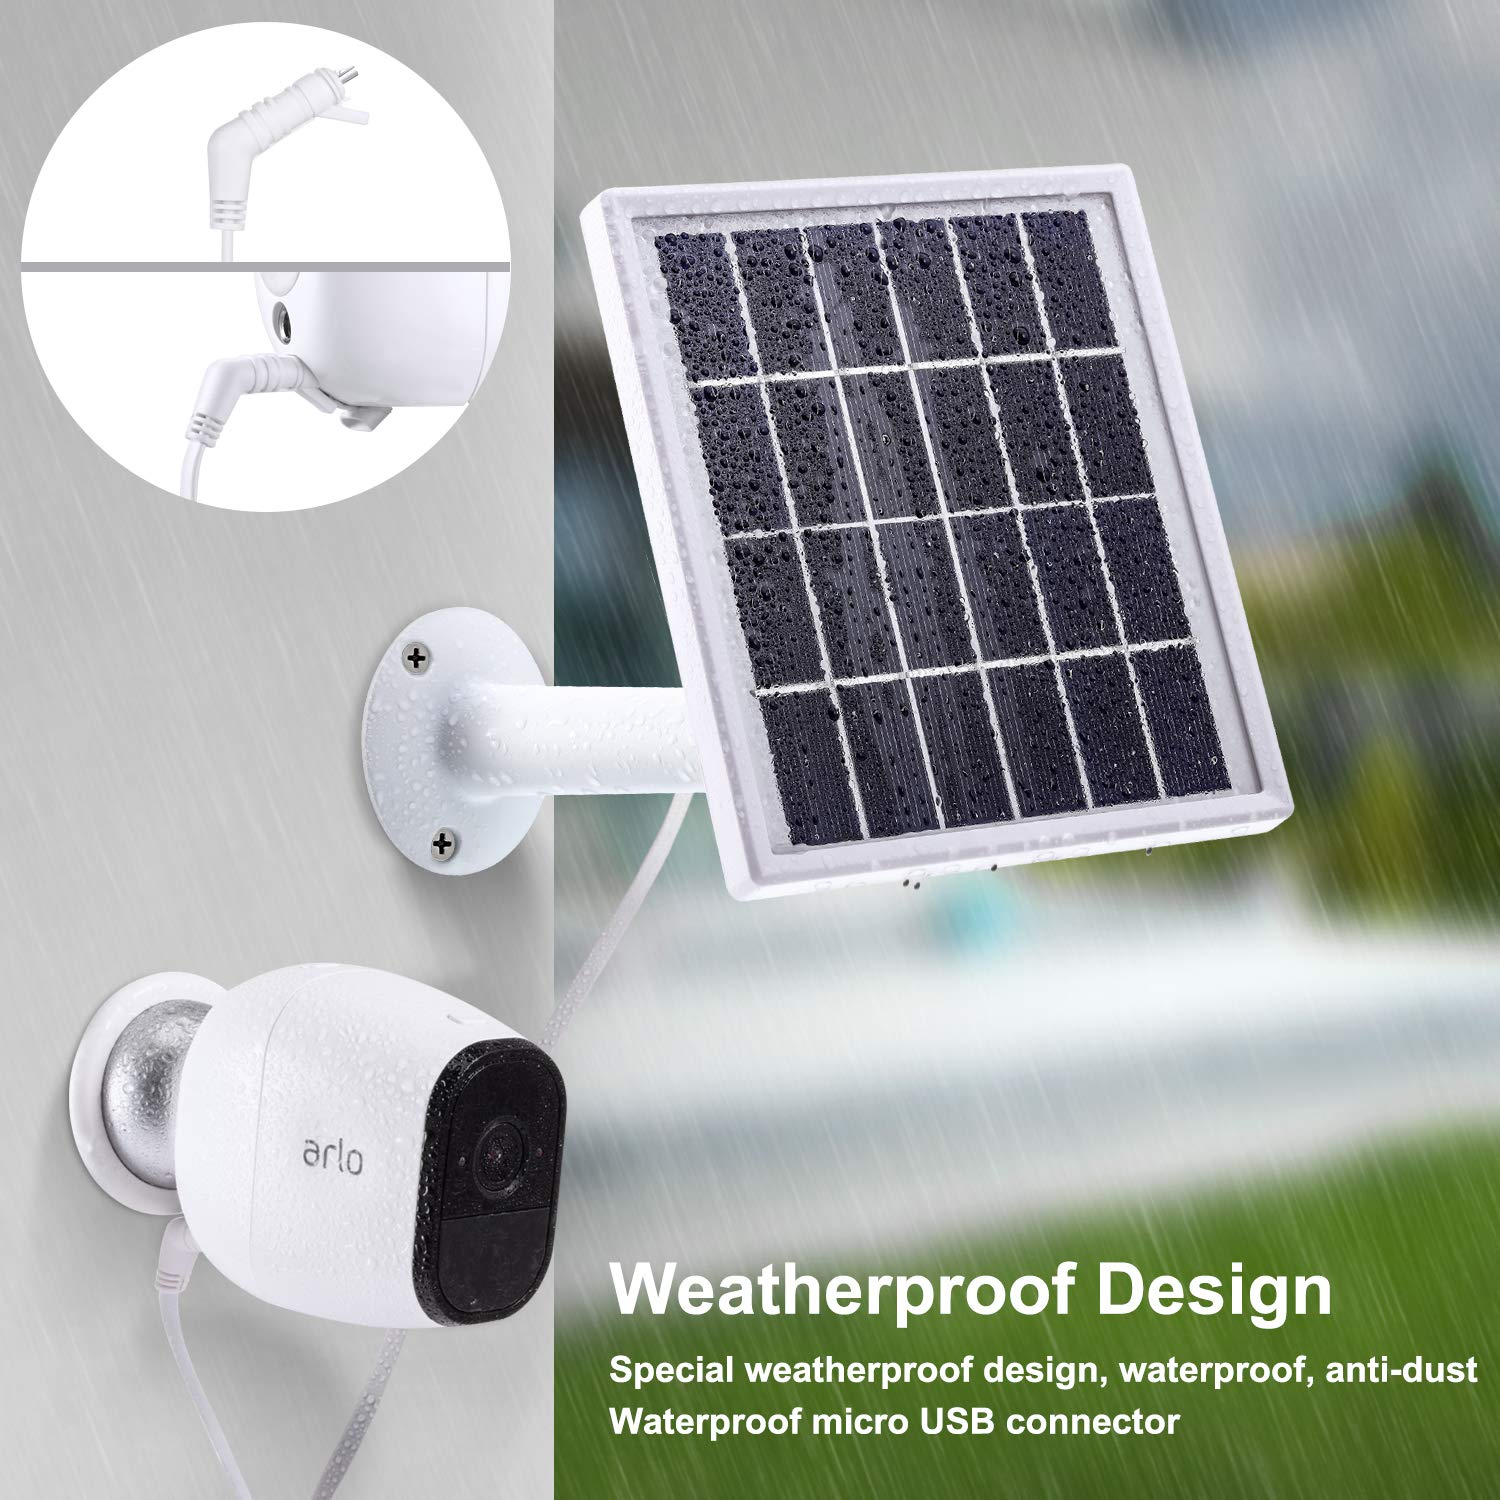 Waterproof Arlo Accessory to Power Arlo Pro Outdoor Security Camera Continuously with Adjustable Mount Bracket Blulu Solar Panel Compatible with Arlo Pro 12 Feet// 3.6 m Cable